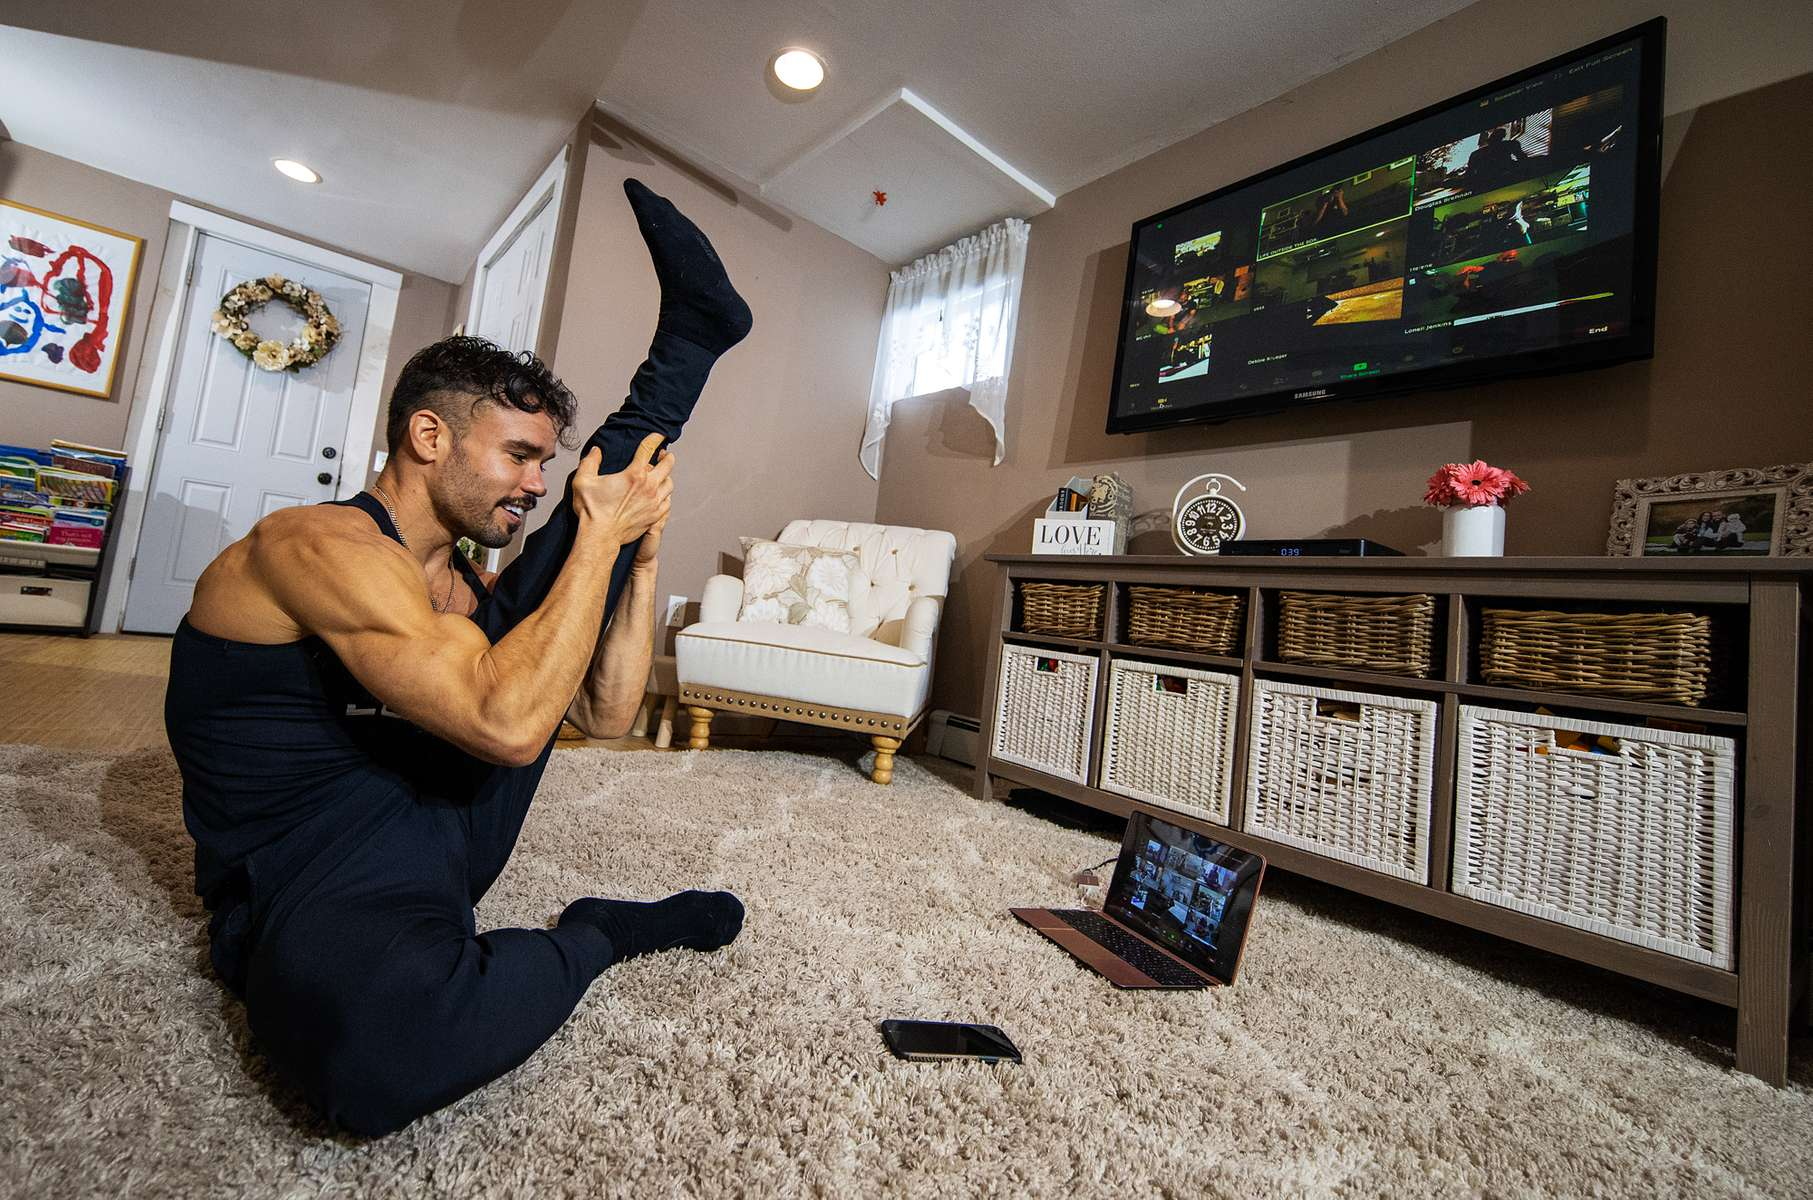 Dennis Guerrero, who is the Co-owner, and Head Trainer of Life Outside the Box fitness leads a virtual exercise class from his living room on November 8th, 2020 in Long Beach, New York. In March of 2014, Dennis Guerrero and his business partner opened a gym on Long Island. The pair shared a passion for fitness, a dream of creating a local community of like-minded people and a willingness to take a risk. Over the next six years, hundreds of members experienced and embraced a unique environment that fostered a palpable energy, helping athletes of all ages and abilities reach their potential.  The gym became a place to share achievements, work through losses and overcome illness. But like so many other businesses, it seemingly had no way of overcoming the financial impact and ongoing uncertainty of a global pandemic. With the arrival of Covid-19, the gym shut its doors back in March, with no idea when it would reopen. The owners, though, were far from done. They lent out every piece of equipment they owned to the gym's members, continued to pay their staff and worked to set up outdoor classes in hopes of keeping their membership active and healthy. As the shutdown stretched on, it became clear that the physical gym was closed for good.  They have since reinvented themselves and are now called Life Outside the Box.  Their business model has changed drastically, and all their workouts have gone virtual.  The workouts are conducted by a small group of fitness trainers led by Guerrero.  The members pay a monthly fee and can take live Zoom fitness classes.  They are coached by the virtual trainers in real time.  More and more people have reconstructed their garages, spare rooms, backyards, and basements into home gyms since the COVID-19 pandemic hit the United States.